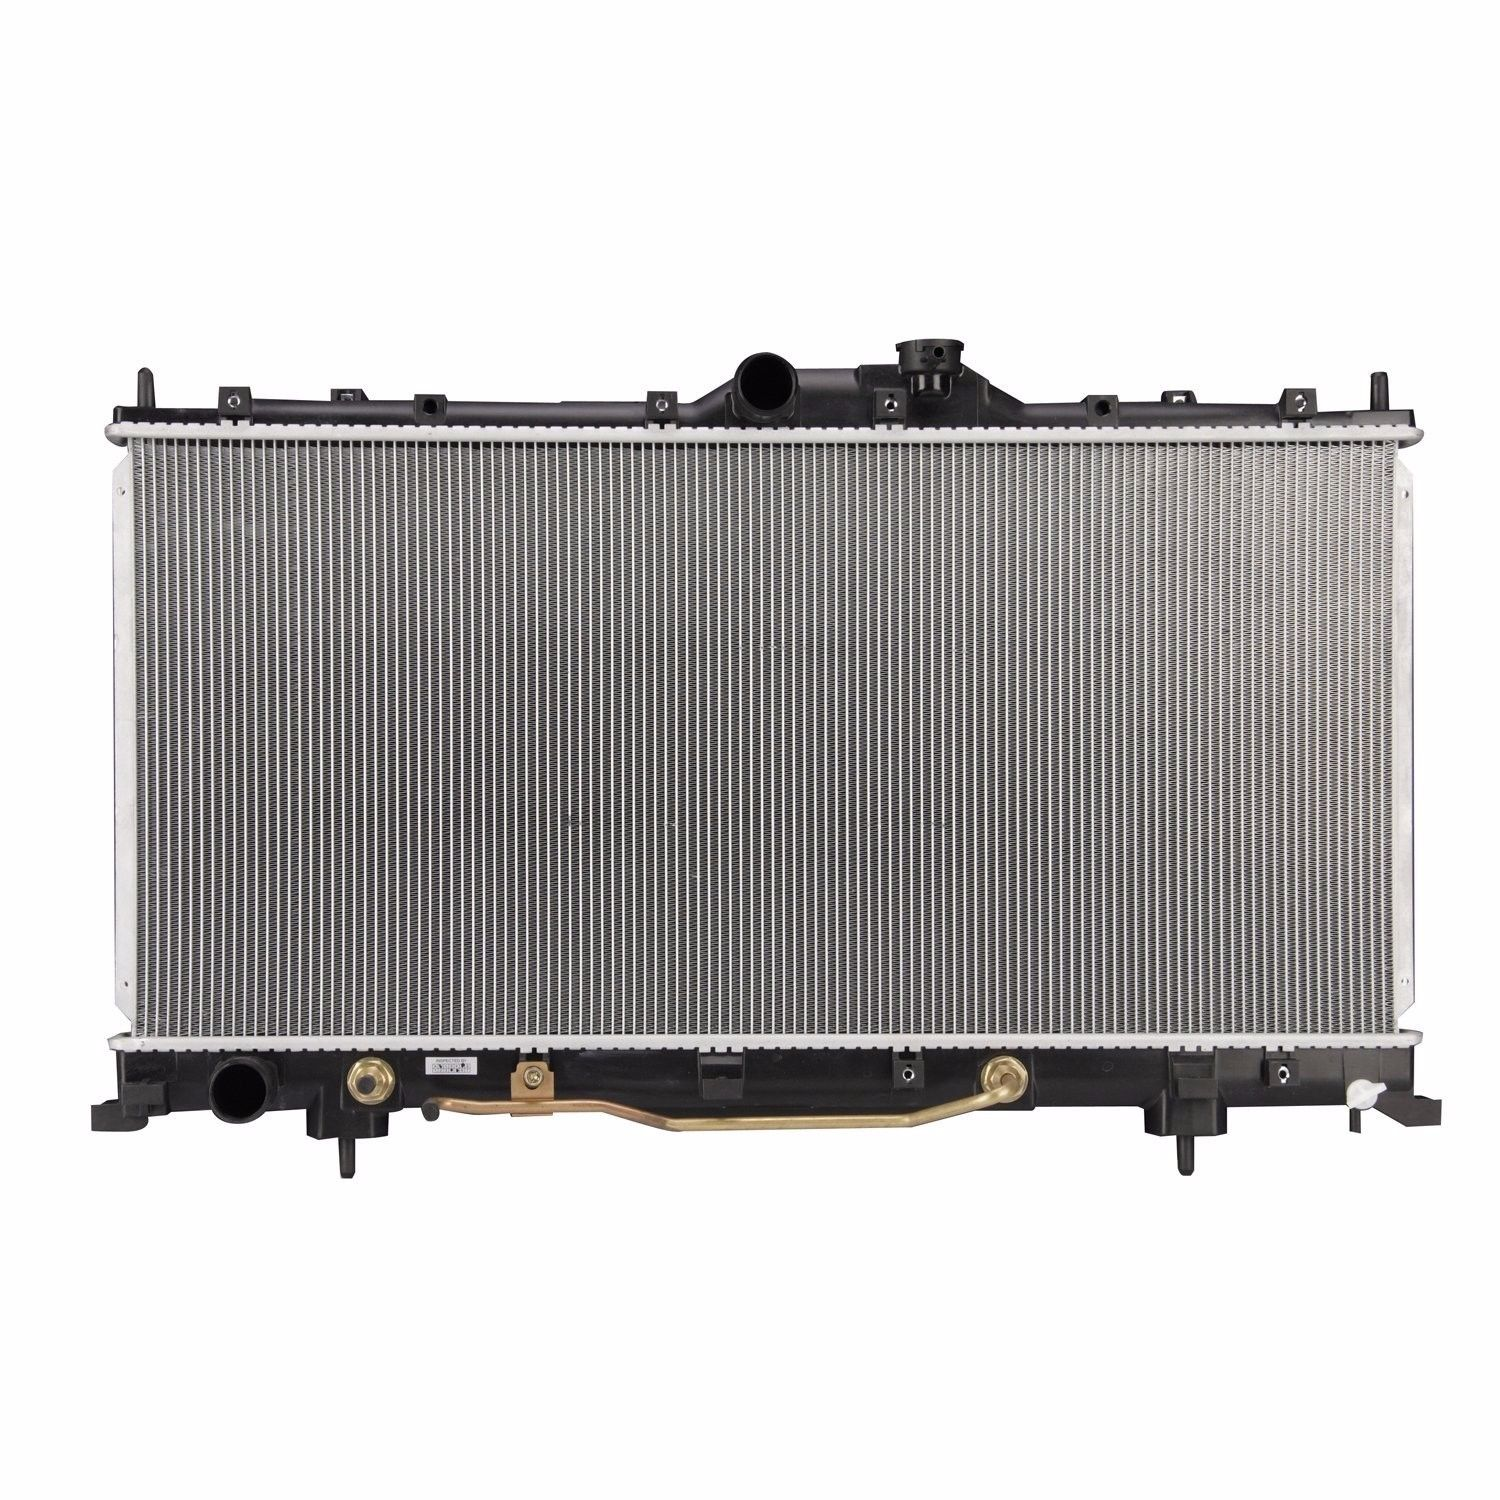 Radiator 2842 Fit Mitsubishi Eclipse 2006-2012